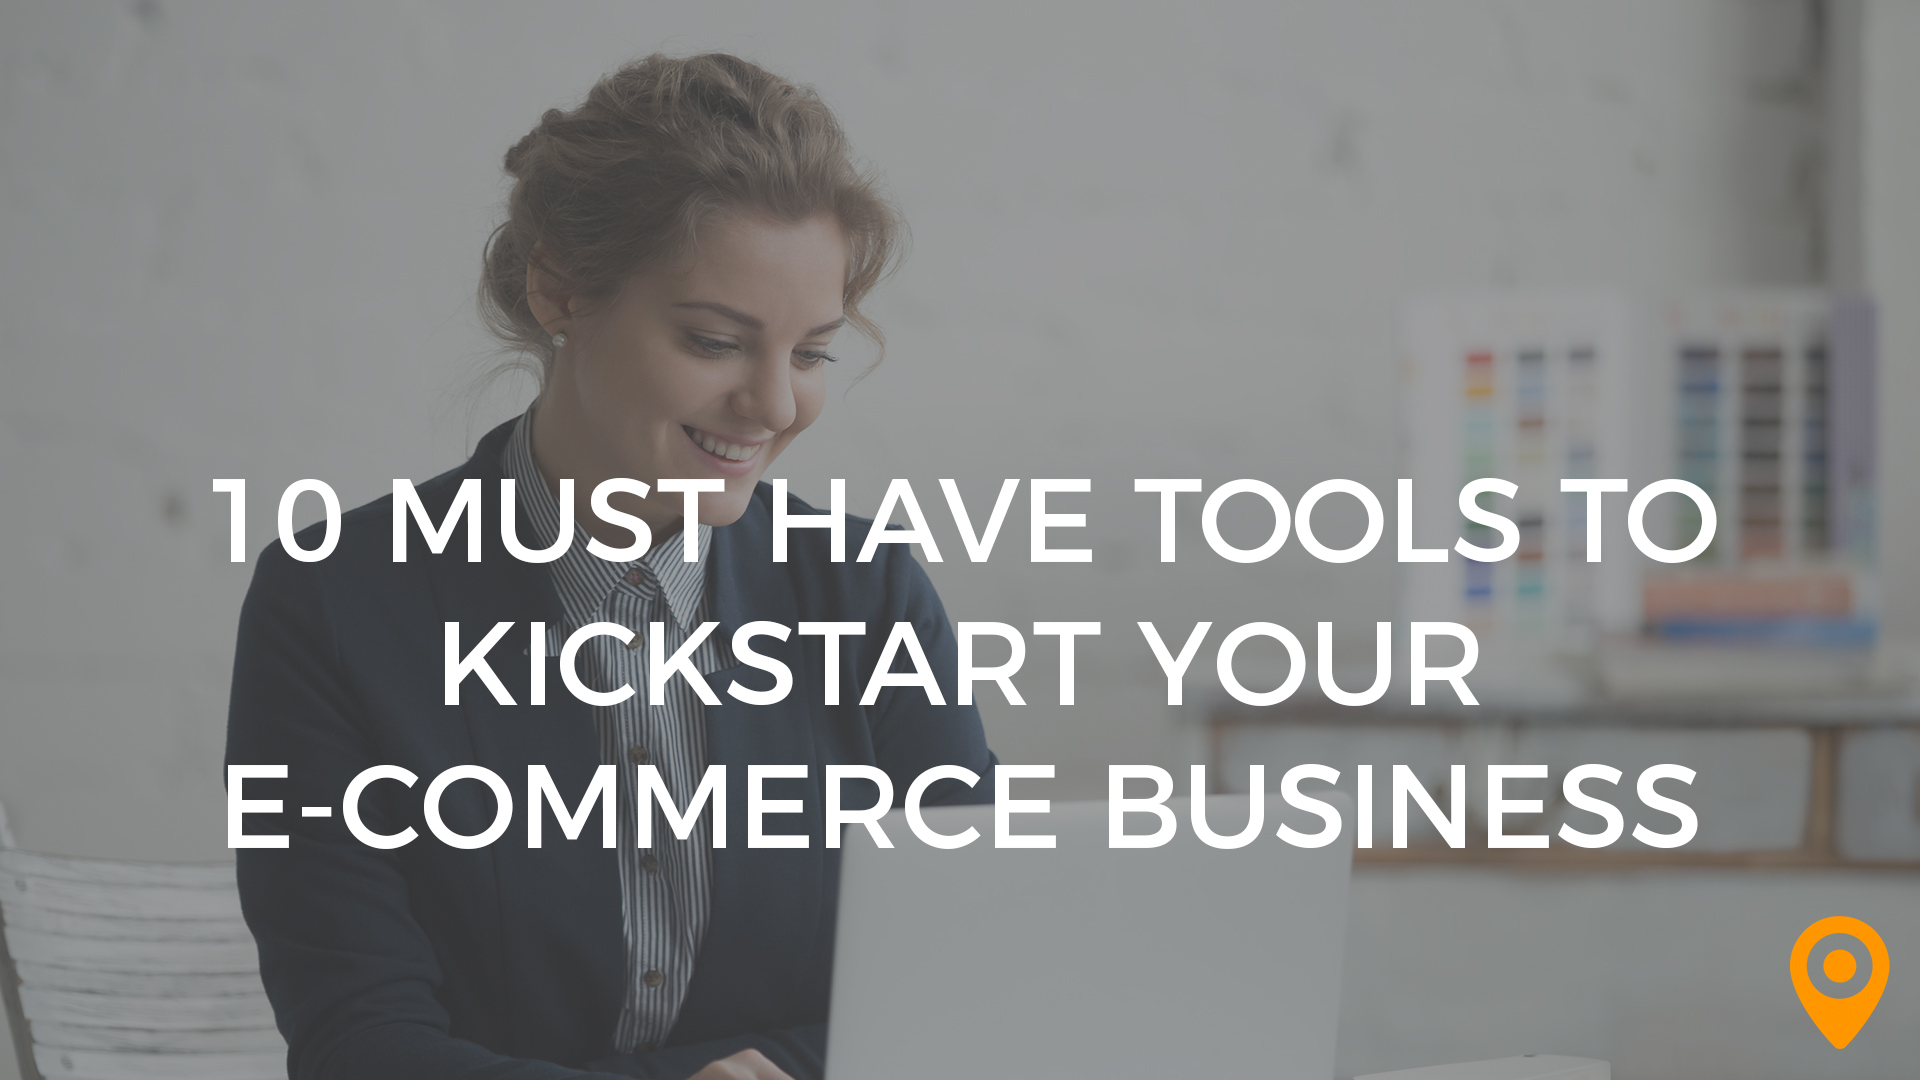 10 must have tools to kickstart your ecommerce business